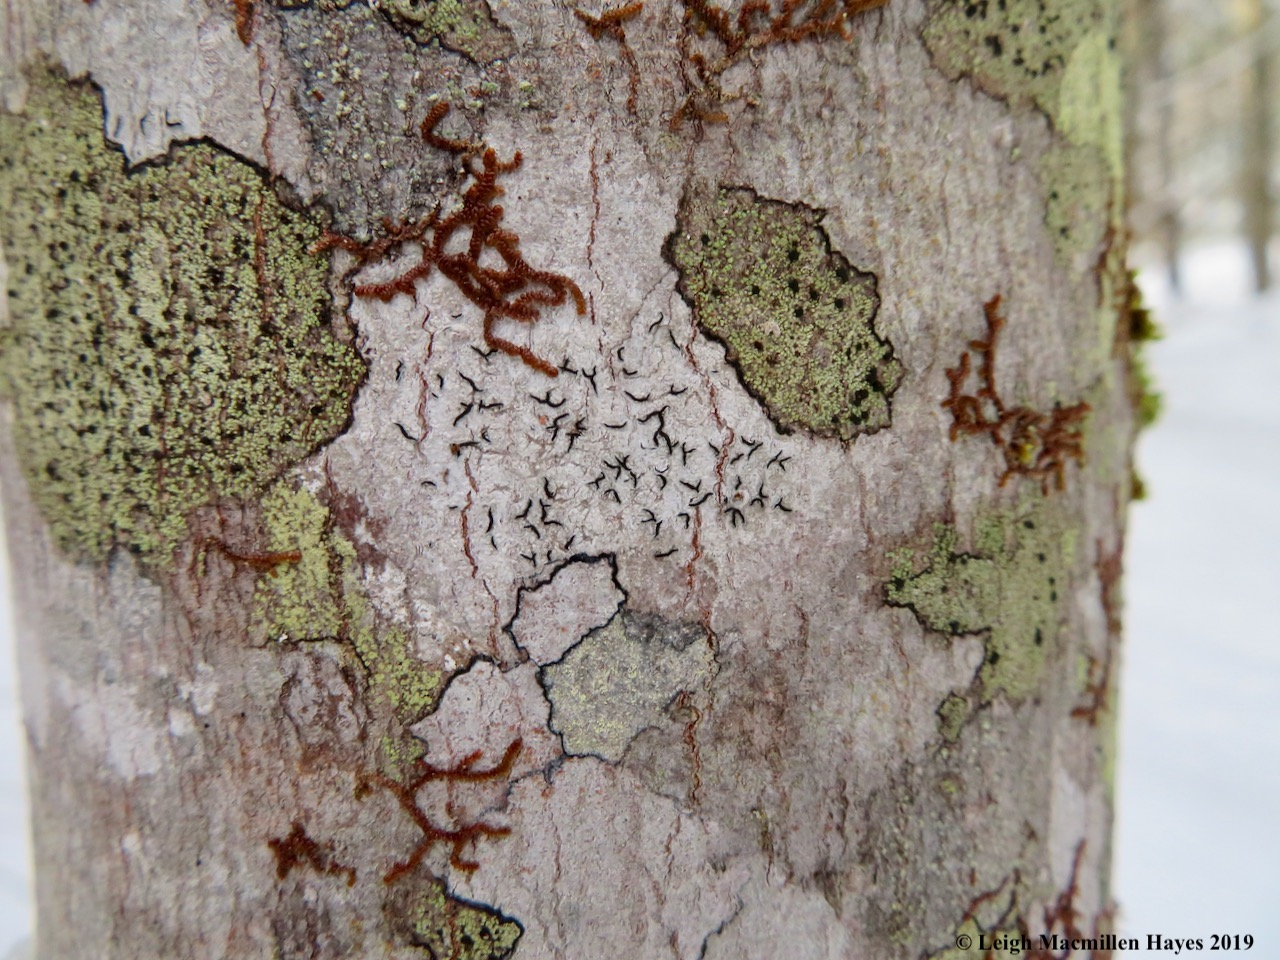 7-looking-at-bark-lichens-and-liverworts.jpg